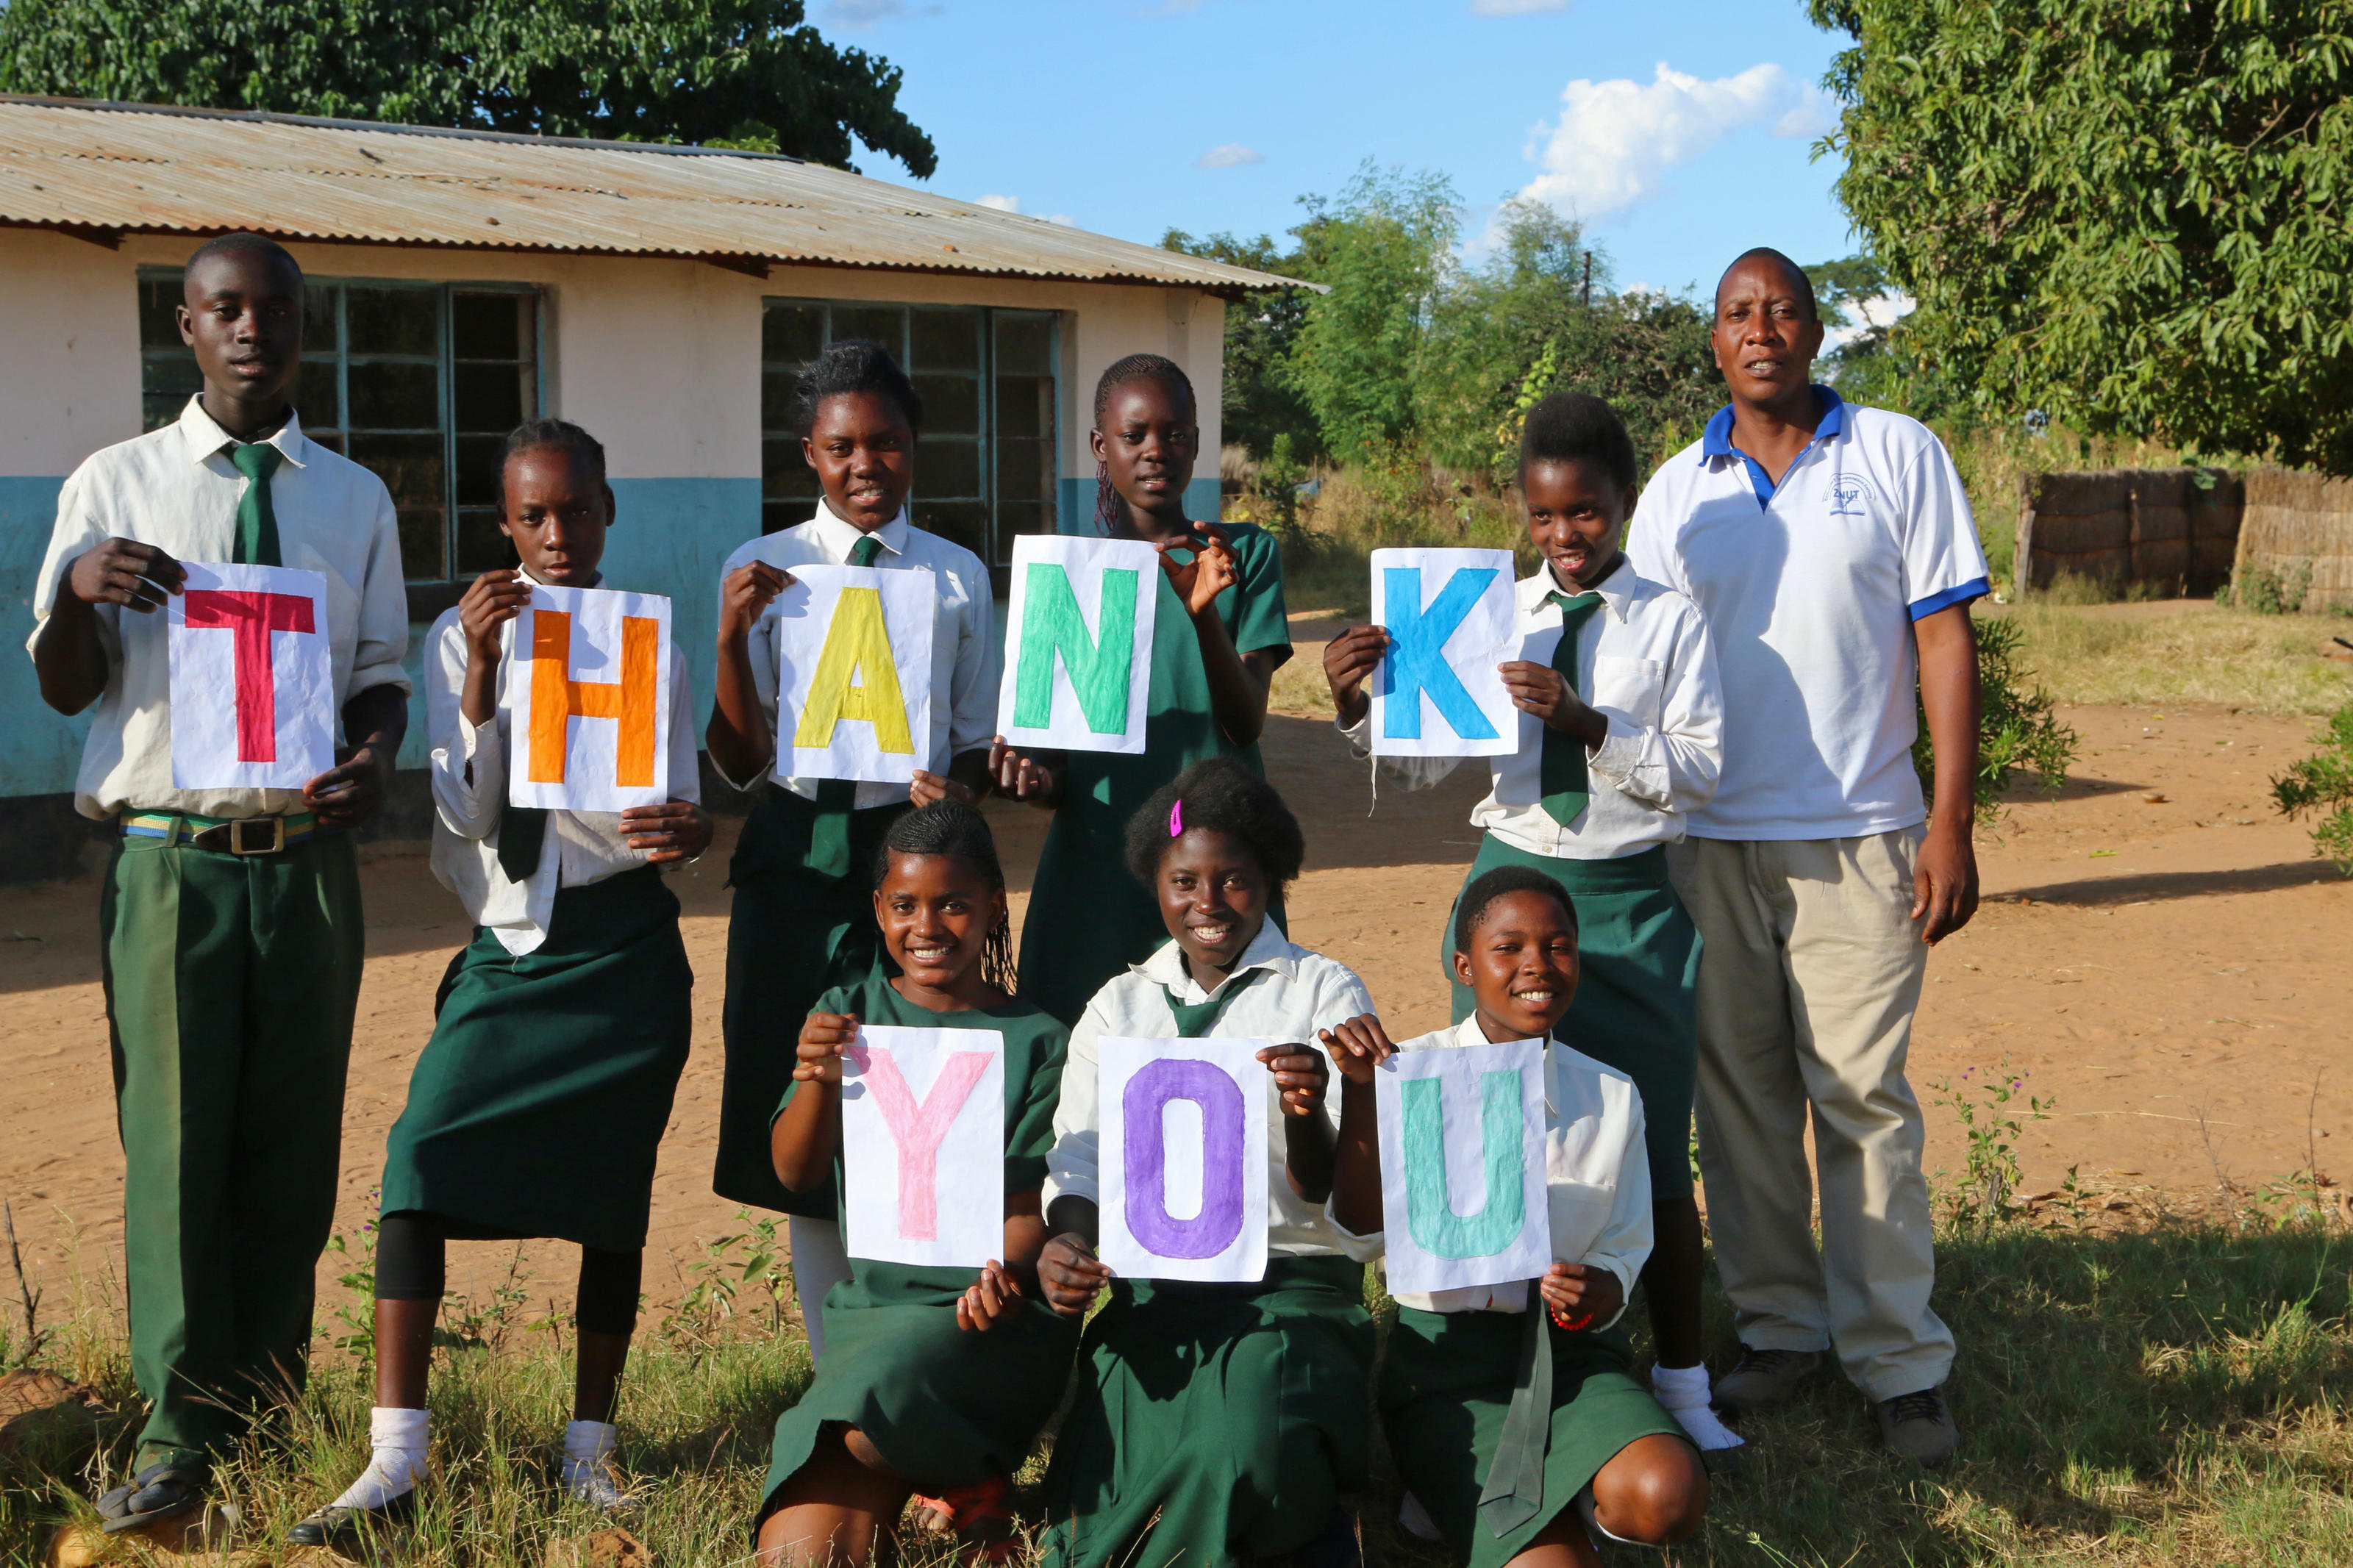 Pupils and their Head Teacher display a 'Thank you' sign for the piped water system that was recently installed at their school.